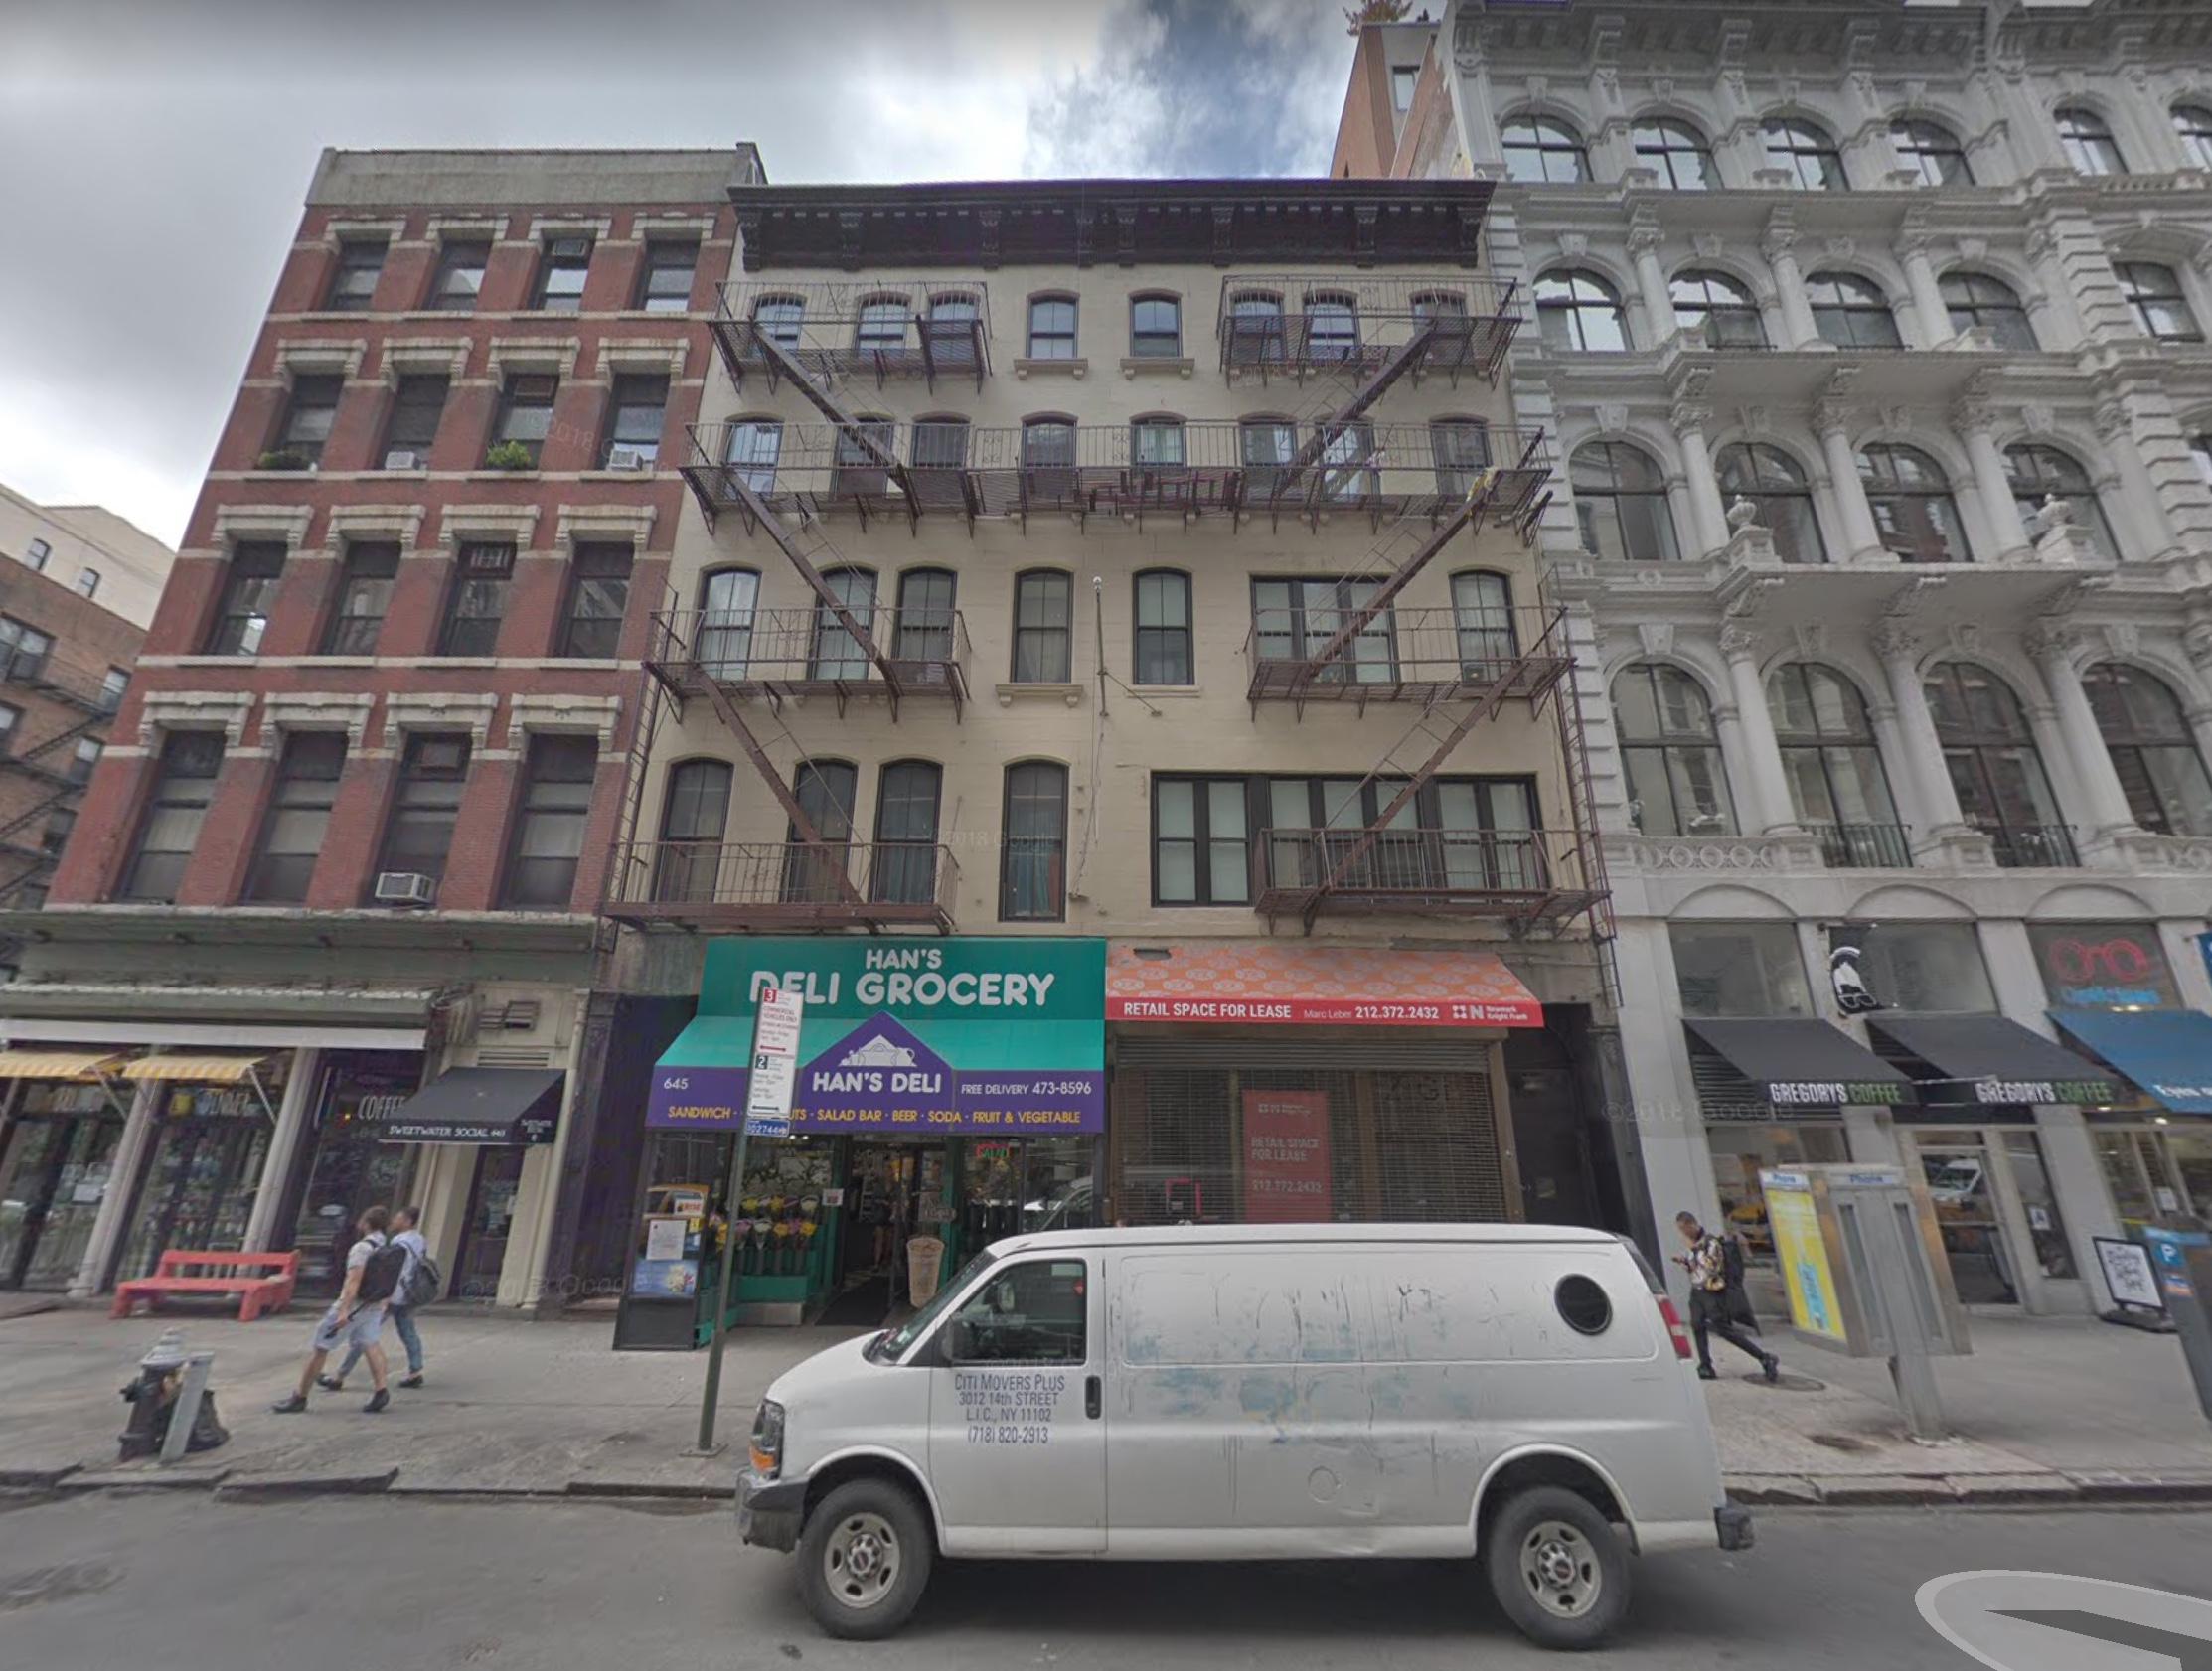 647-648 Broadway. The site of David Mancuso's The Loft. Now forgotten.